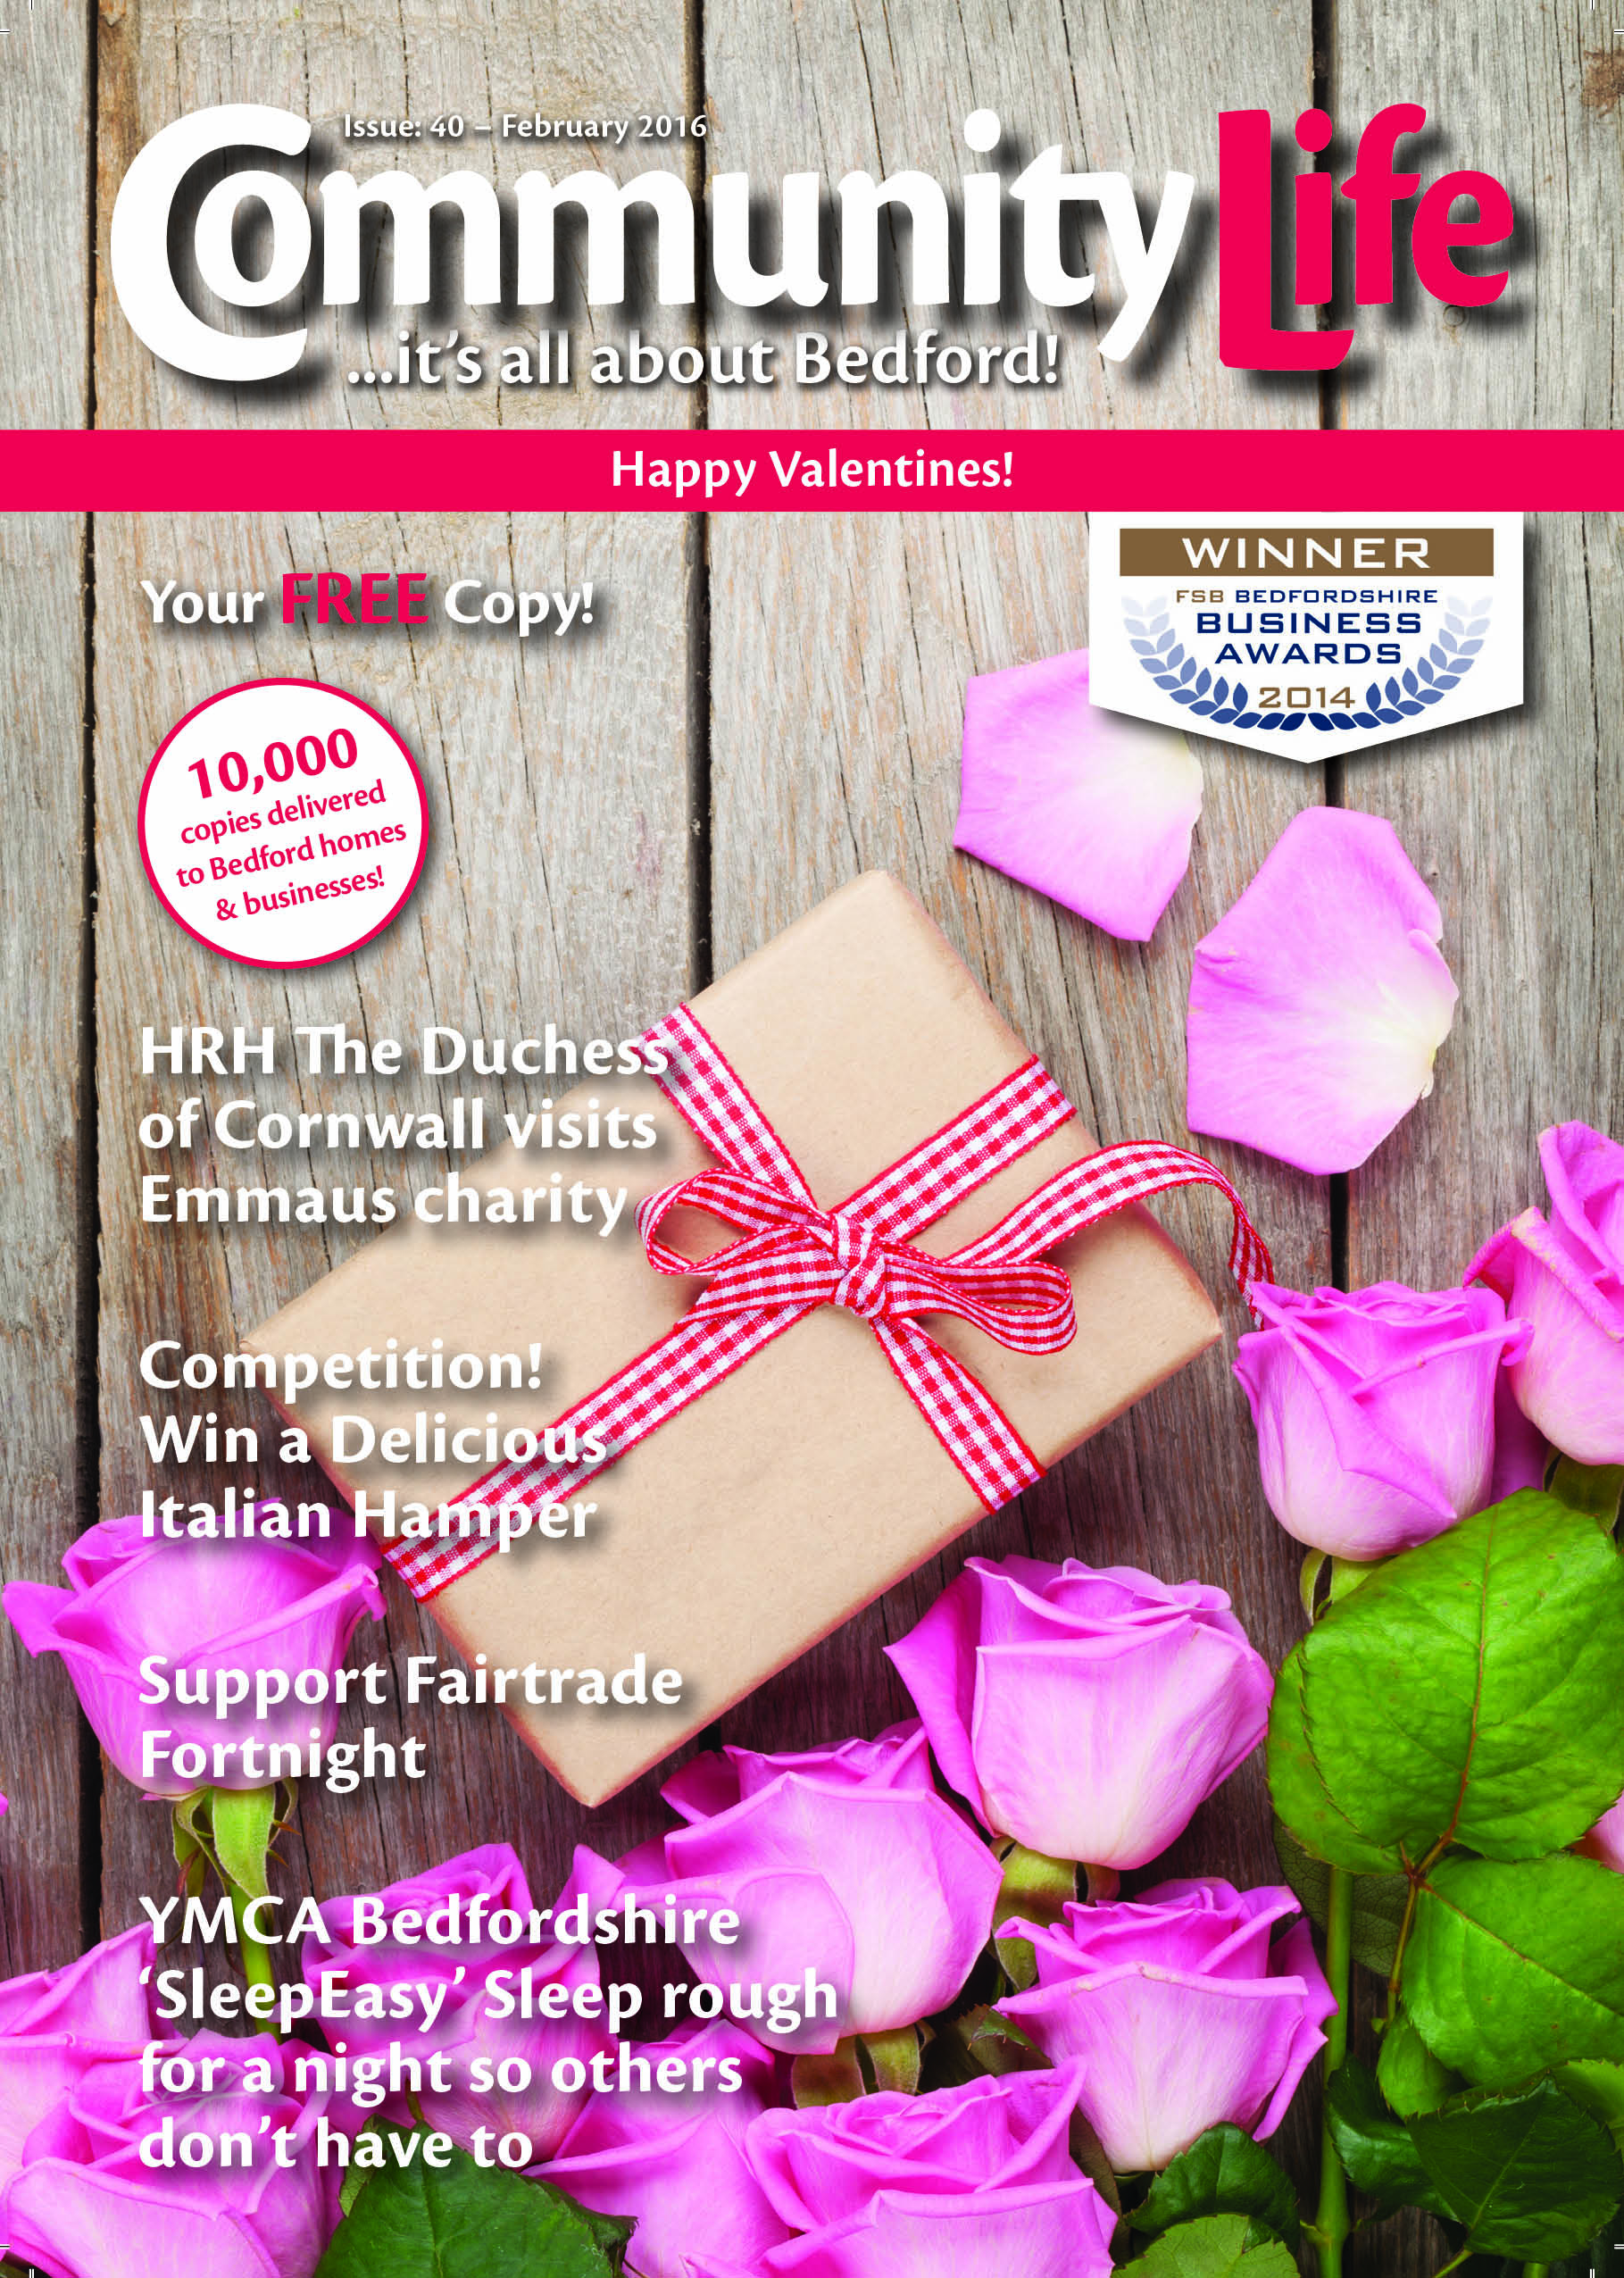 Final-Front-Cover-CL-Feb-Issue-40